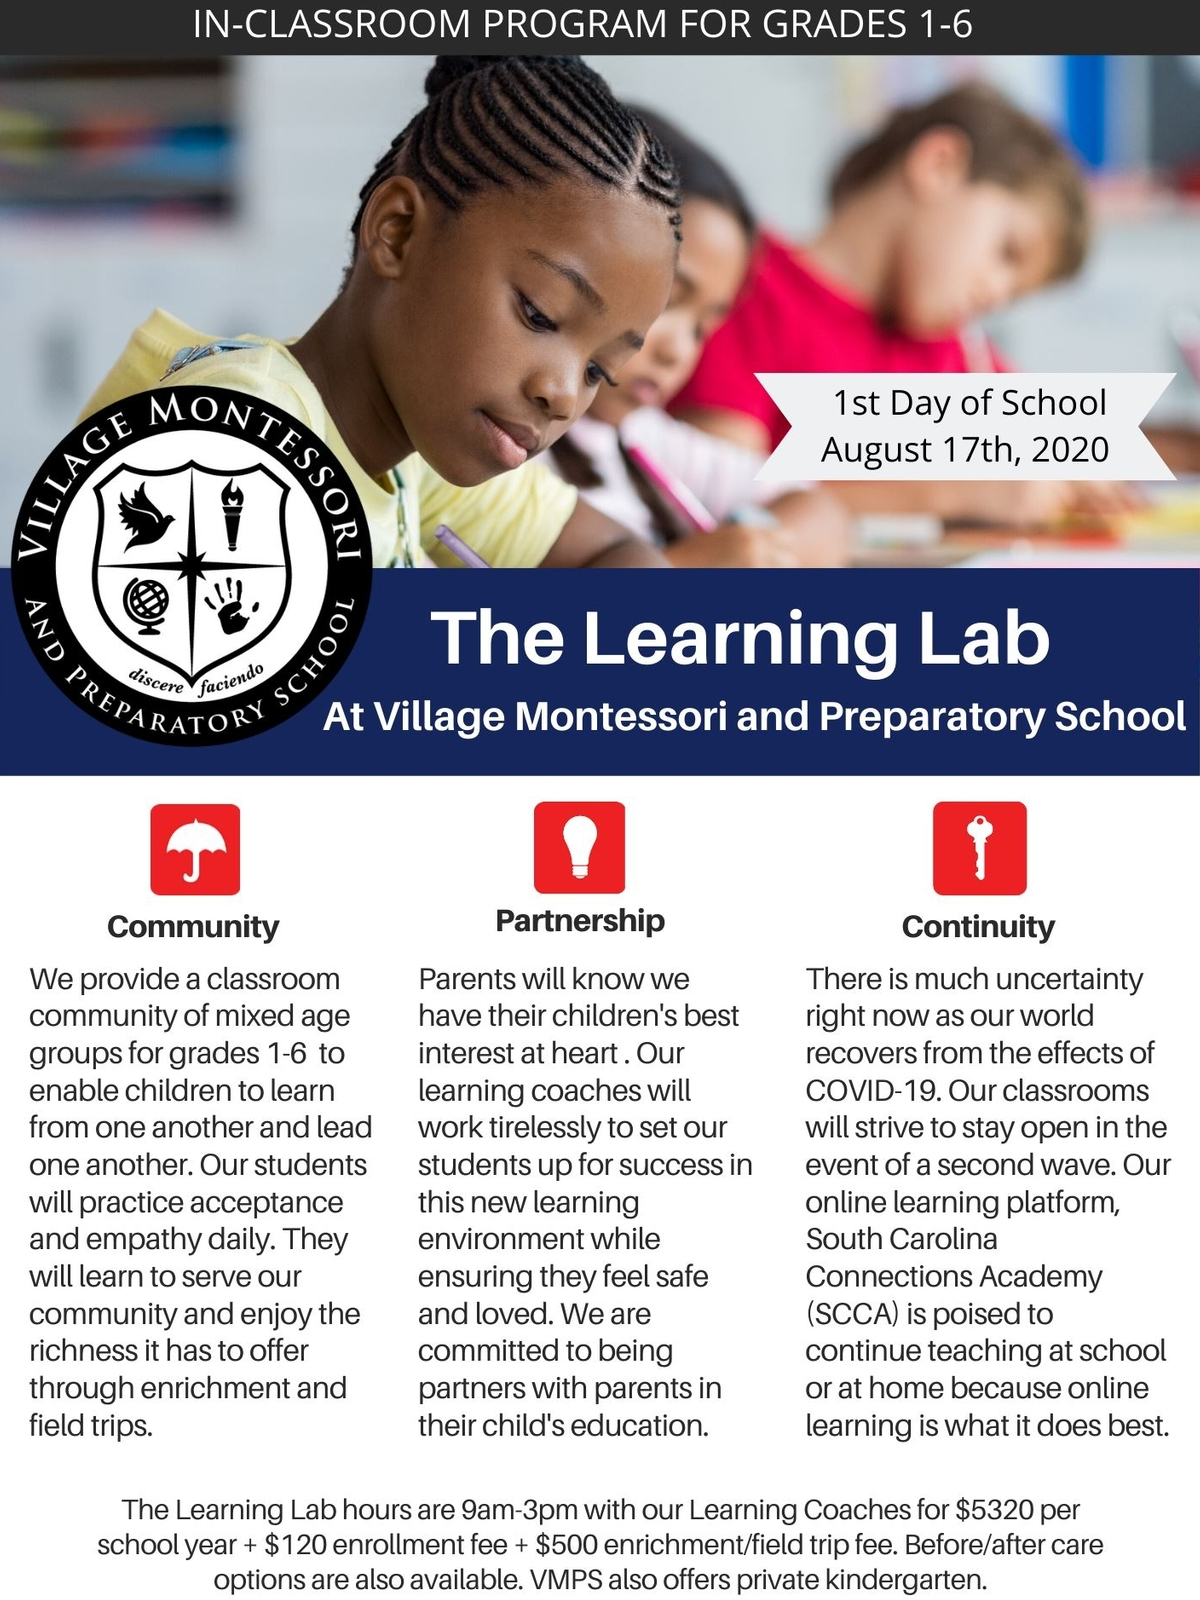 The Learning Lab for SCCA - Student Orientation